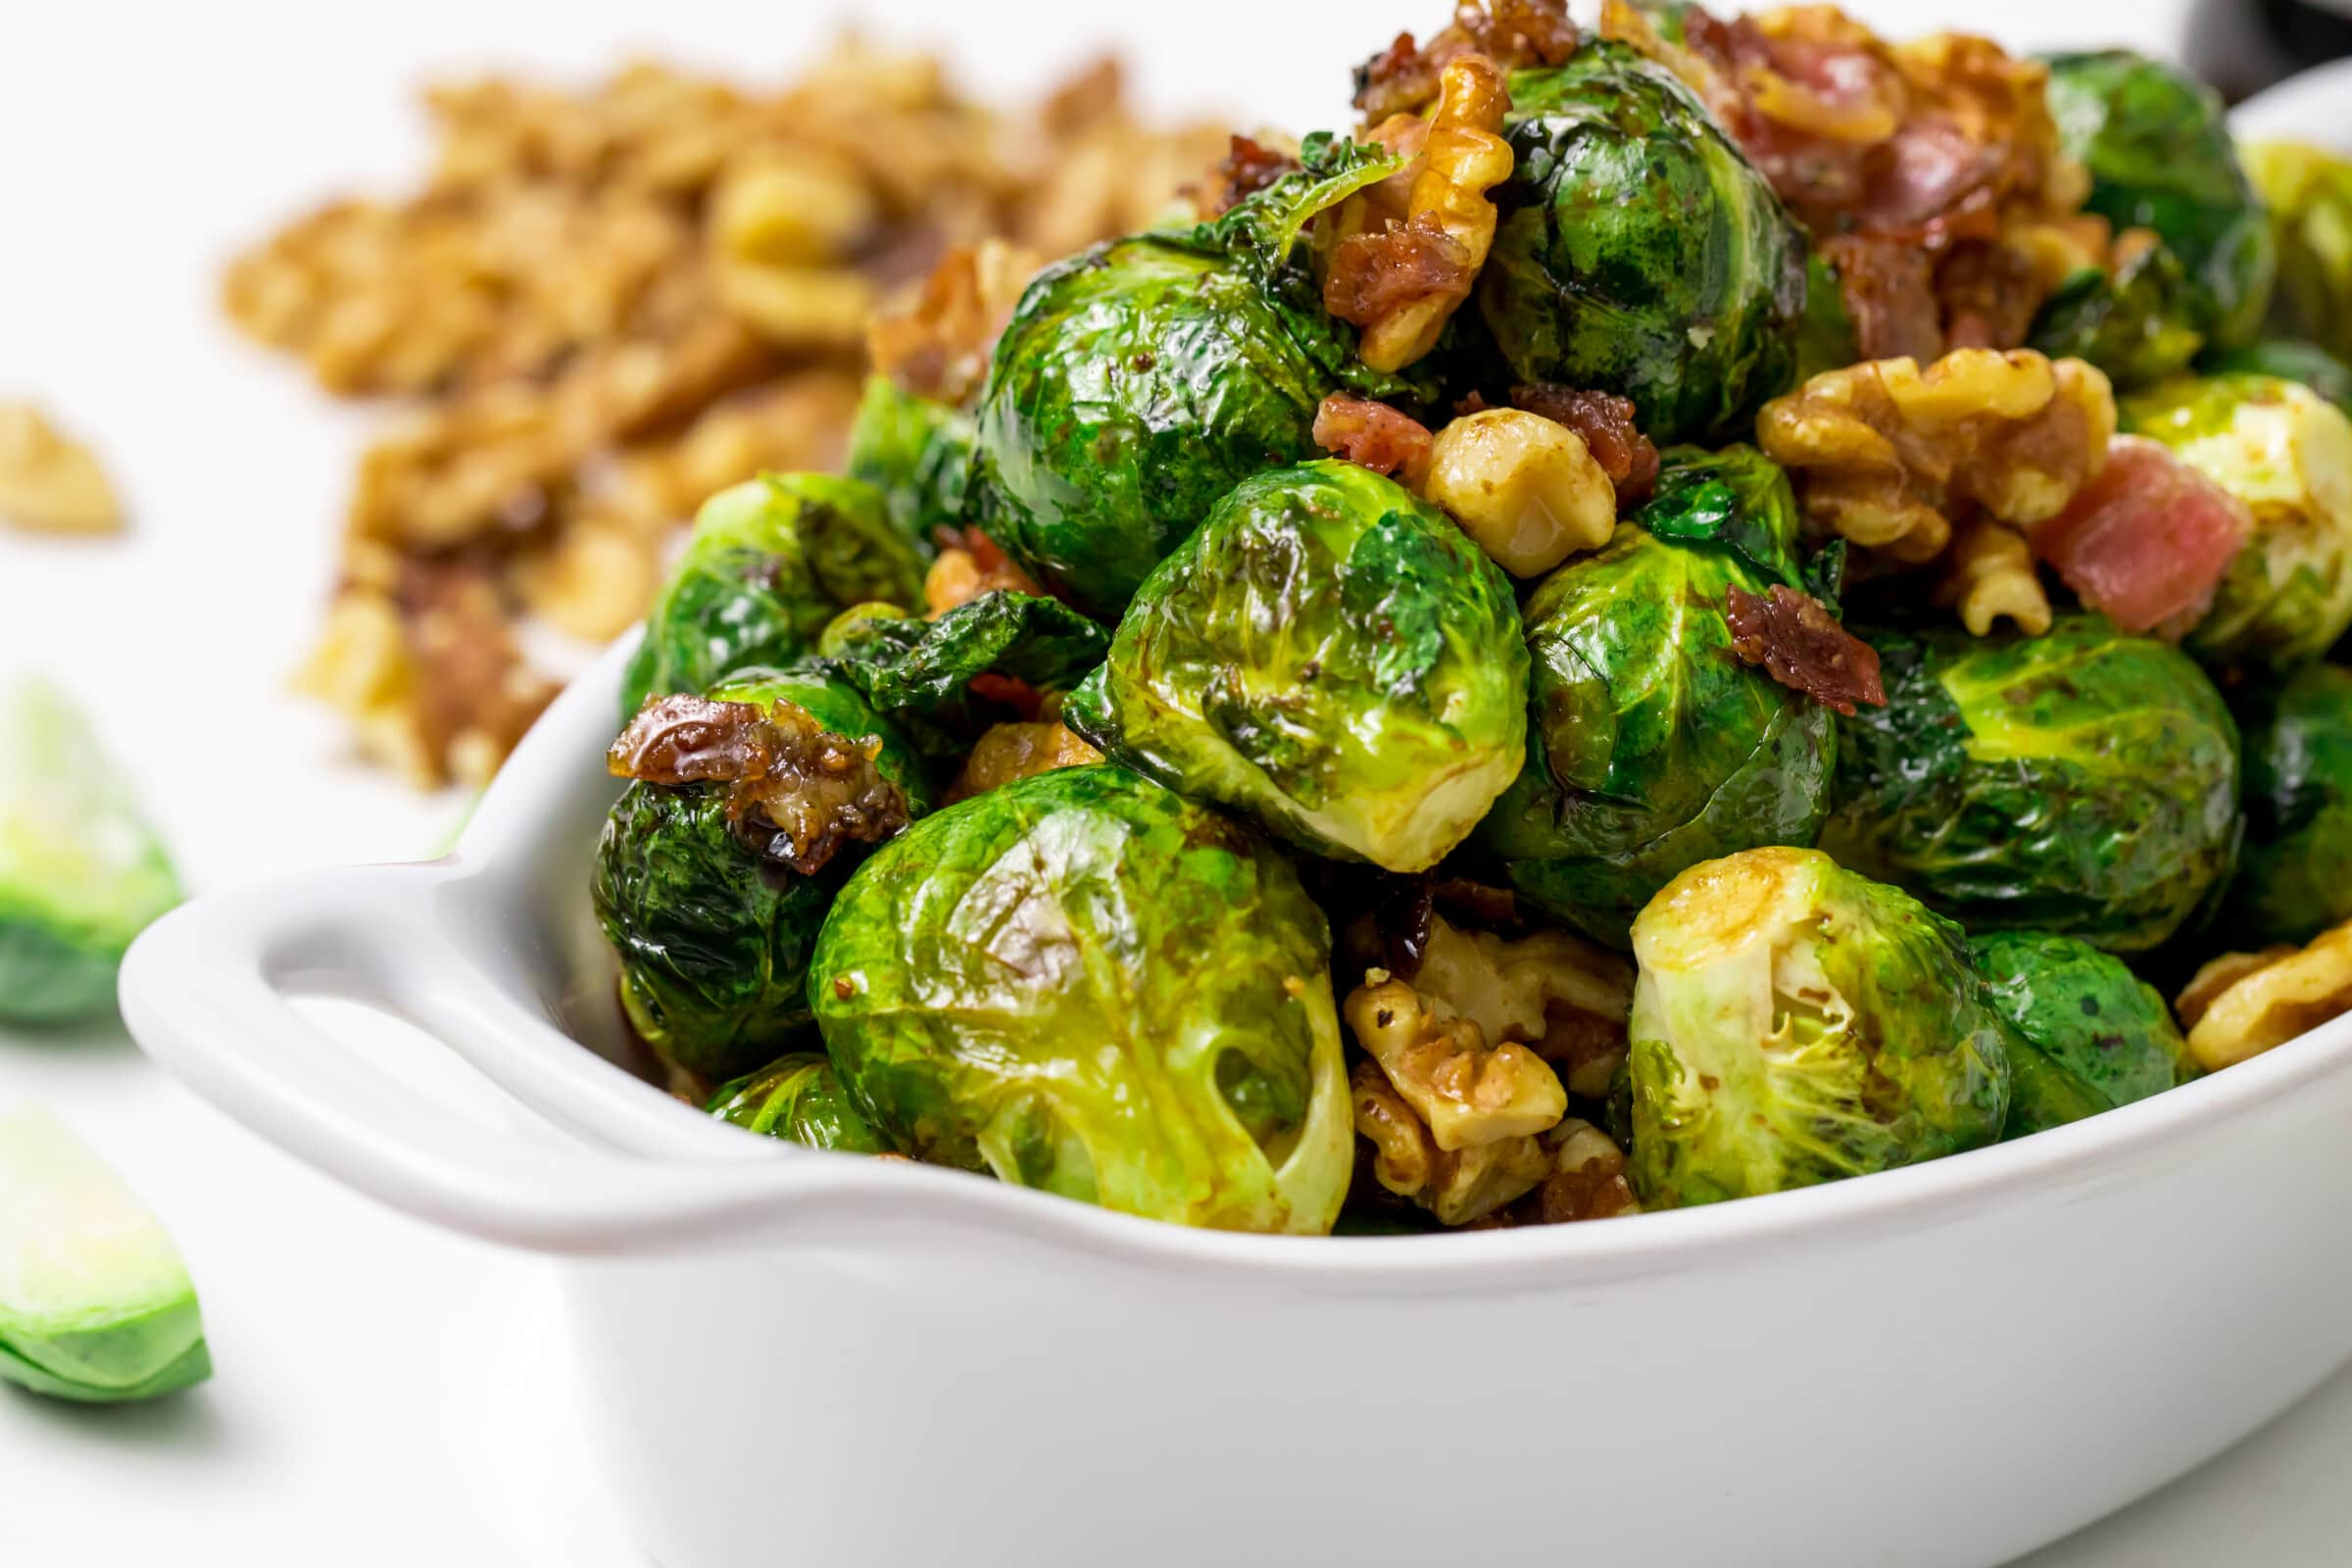 5D4B2127 - Copycat Ina Garten Brussels sprouts with balsamic vinegar